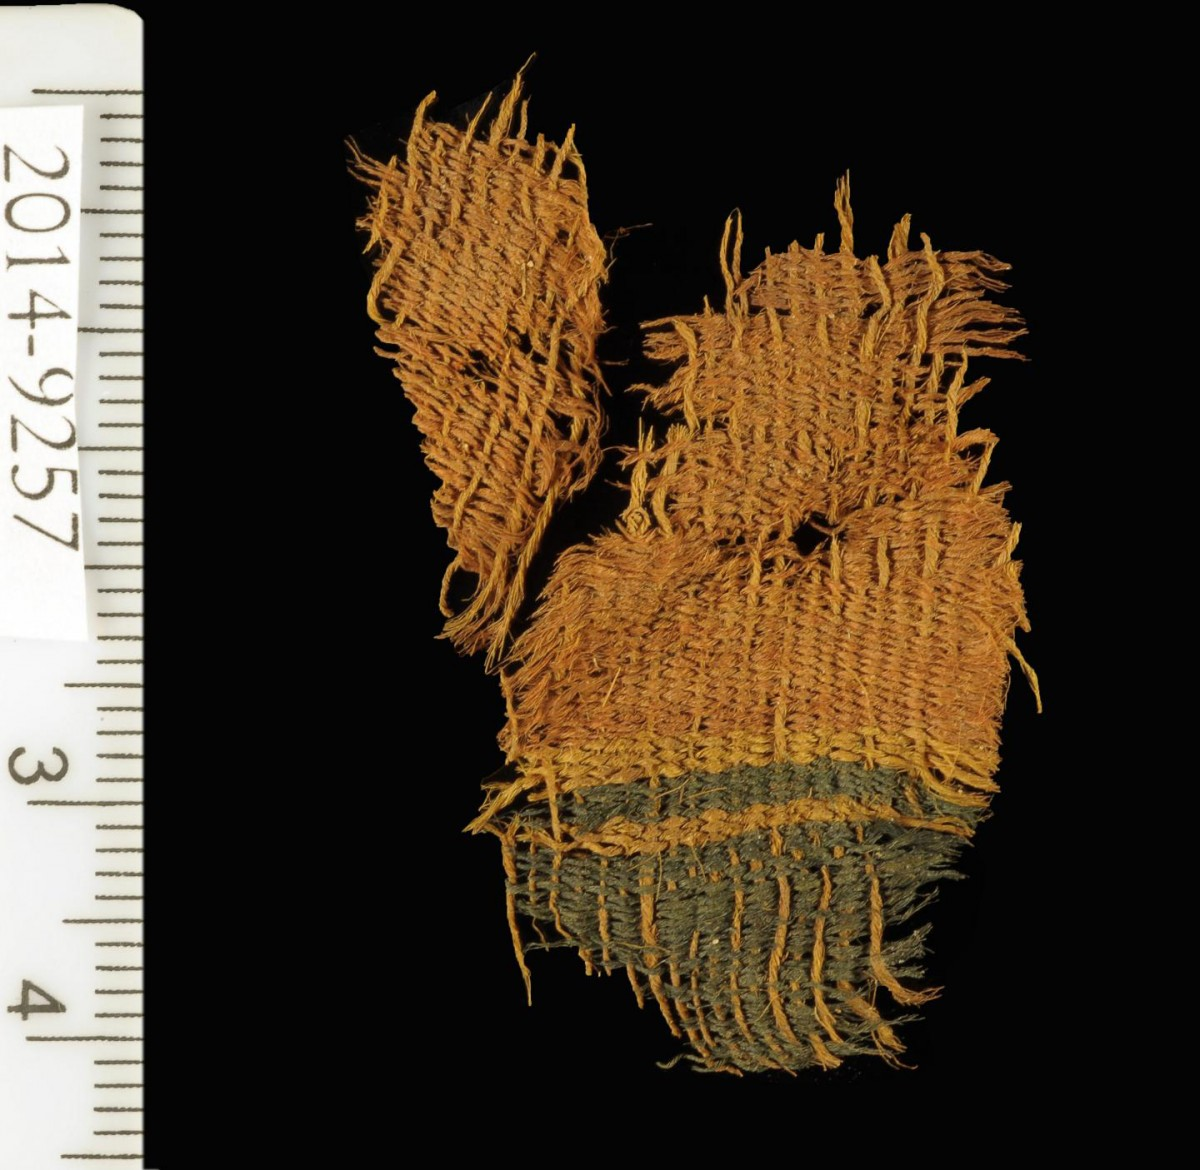 A fine wool textile dyed red and blue, found at Timna. The textile used the various colors of natural animal hair to create black and orange-brown colors for decorative bands. Credit: Clara Amit, courtesy of the Israel Antiquities Authority.